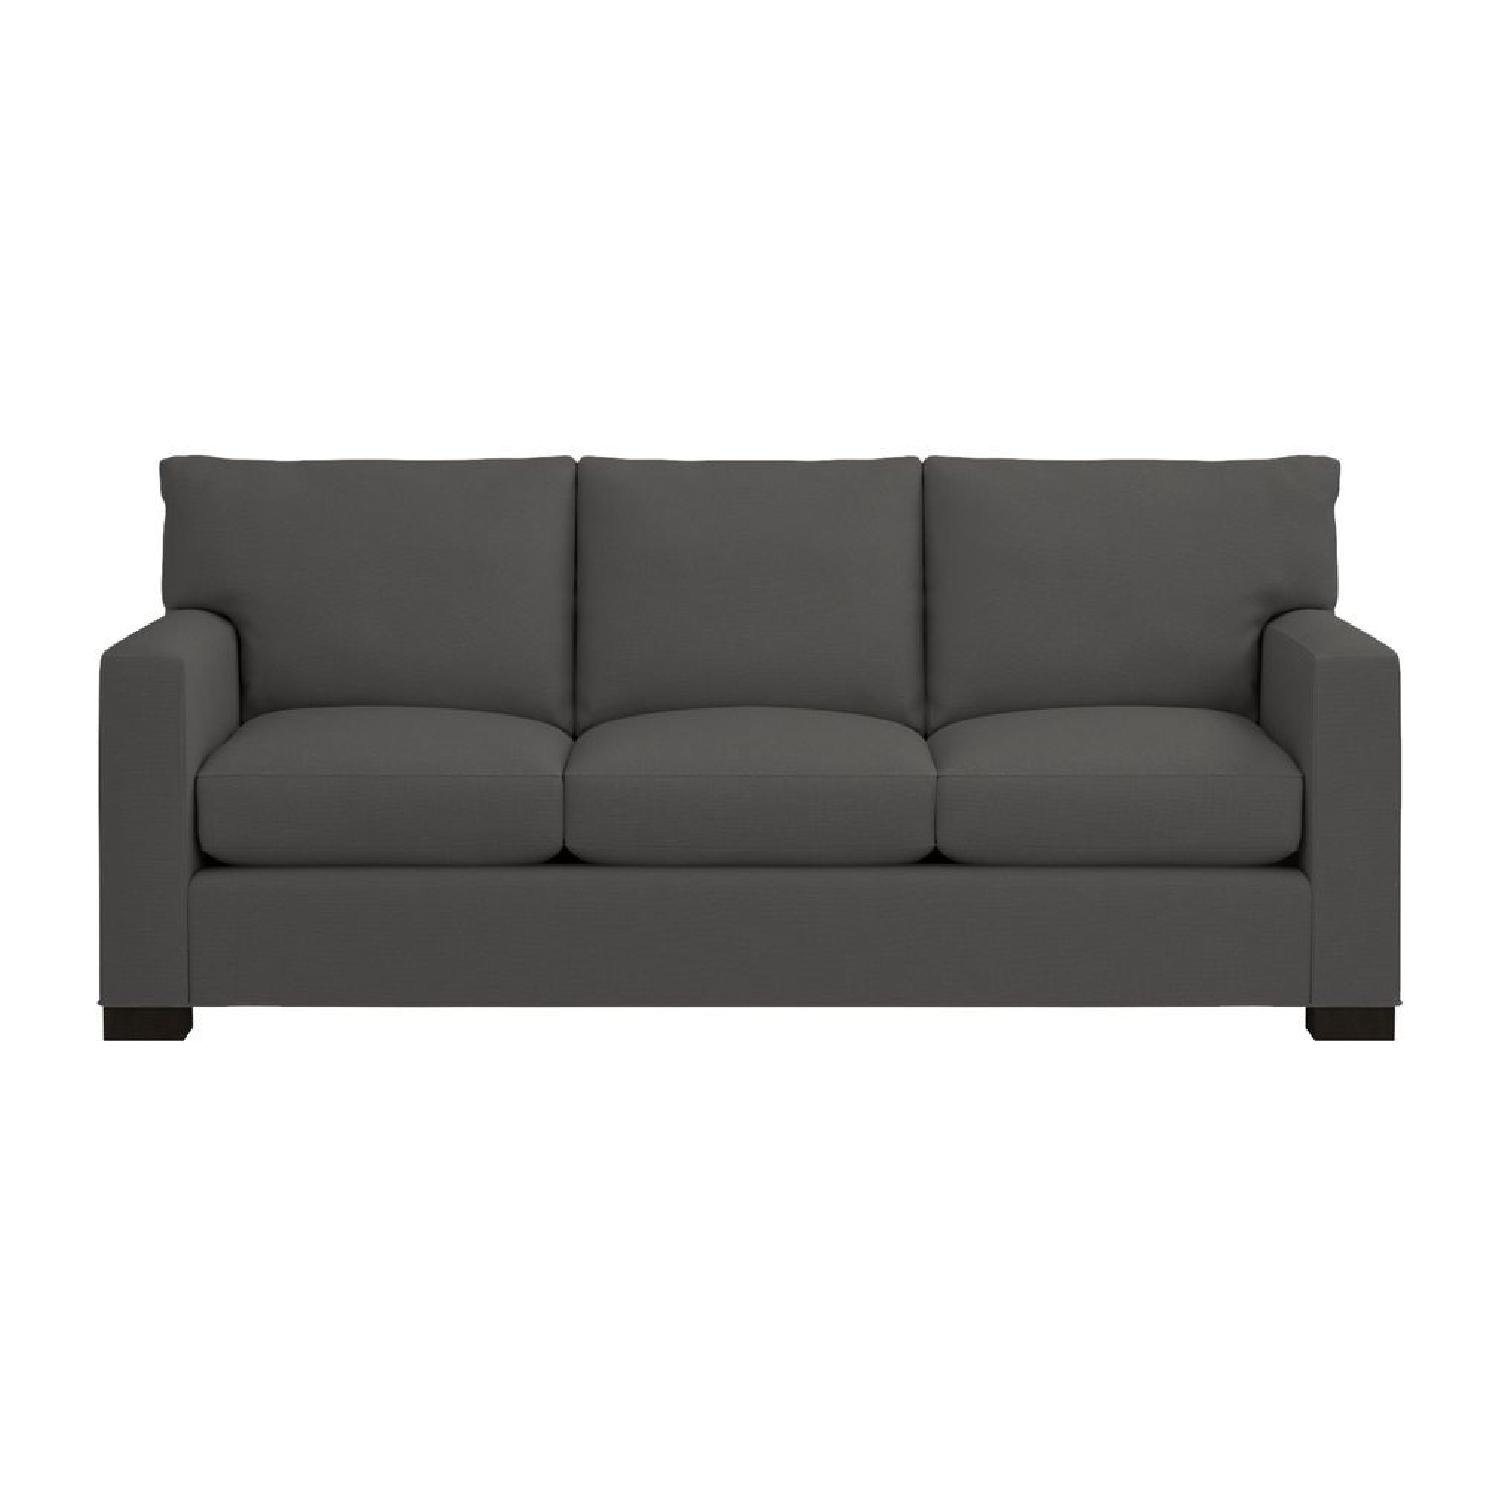 Crate U0026 Barrel Axis 3 Seat Queen Sleeper Sofa ...